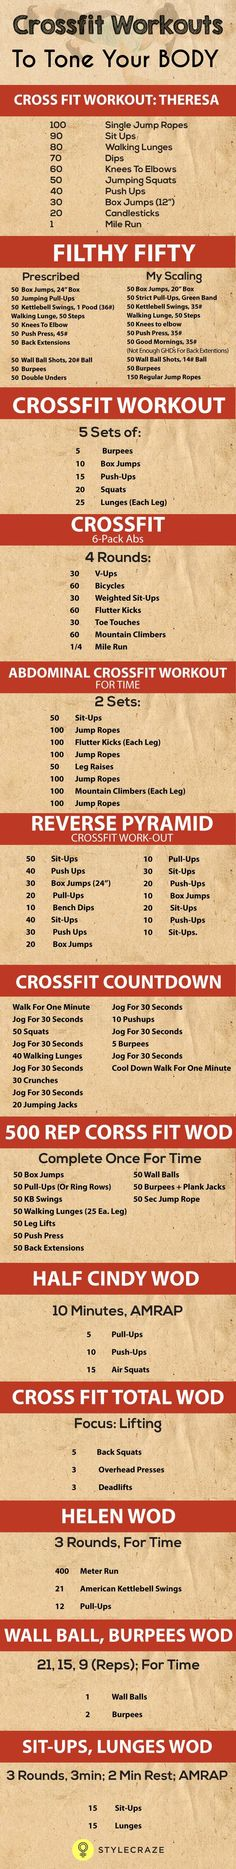 20 Effective Crossfit Workouts to Strengthen Your Body weight lossucess . 20 Effective Crossfit Workouts to Strengthen Your Body weight lossucess . Fitness Workouts, Sport Fitness, Toning Workouts, At Home Workouts, Fitness Motivation, Health Fitness, Fitness Shirts, Fitness Equipment, Fitness Goals